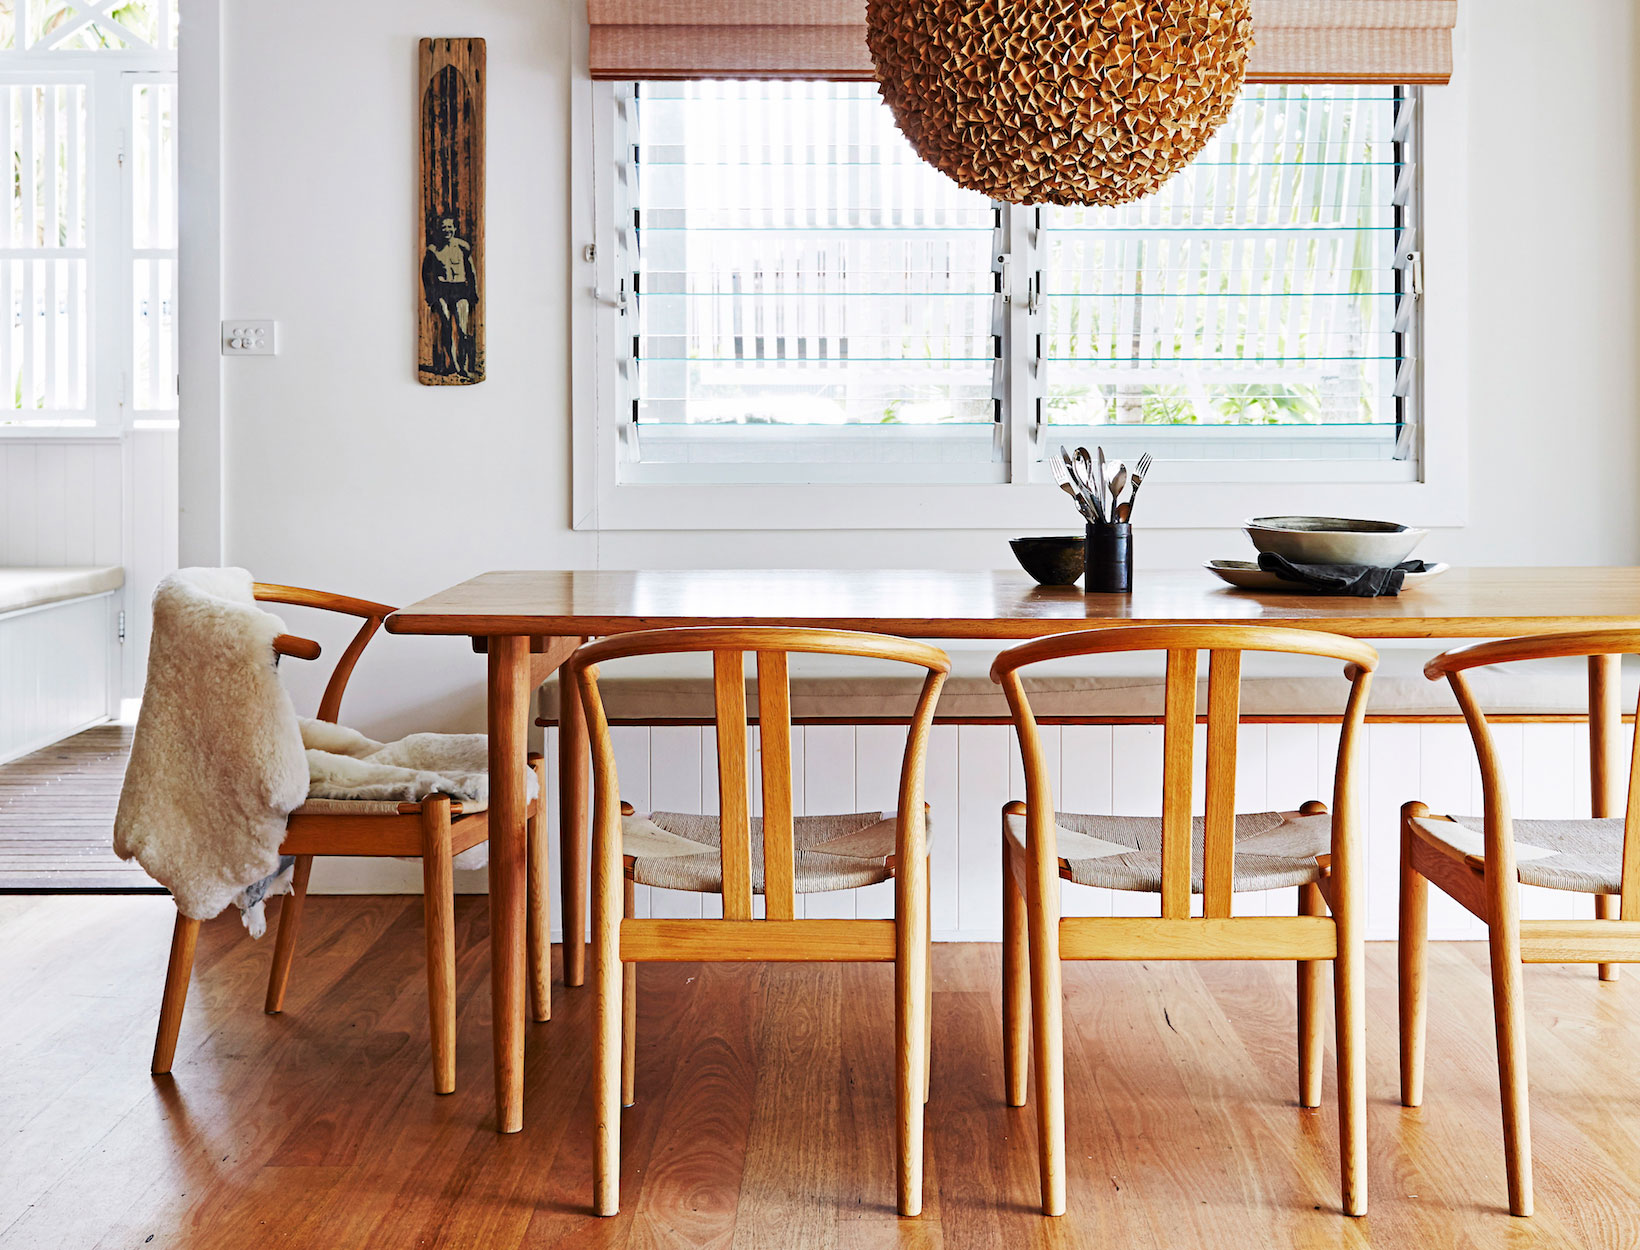 6 Design Professionals on Their Favorite Dining Tables